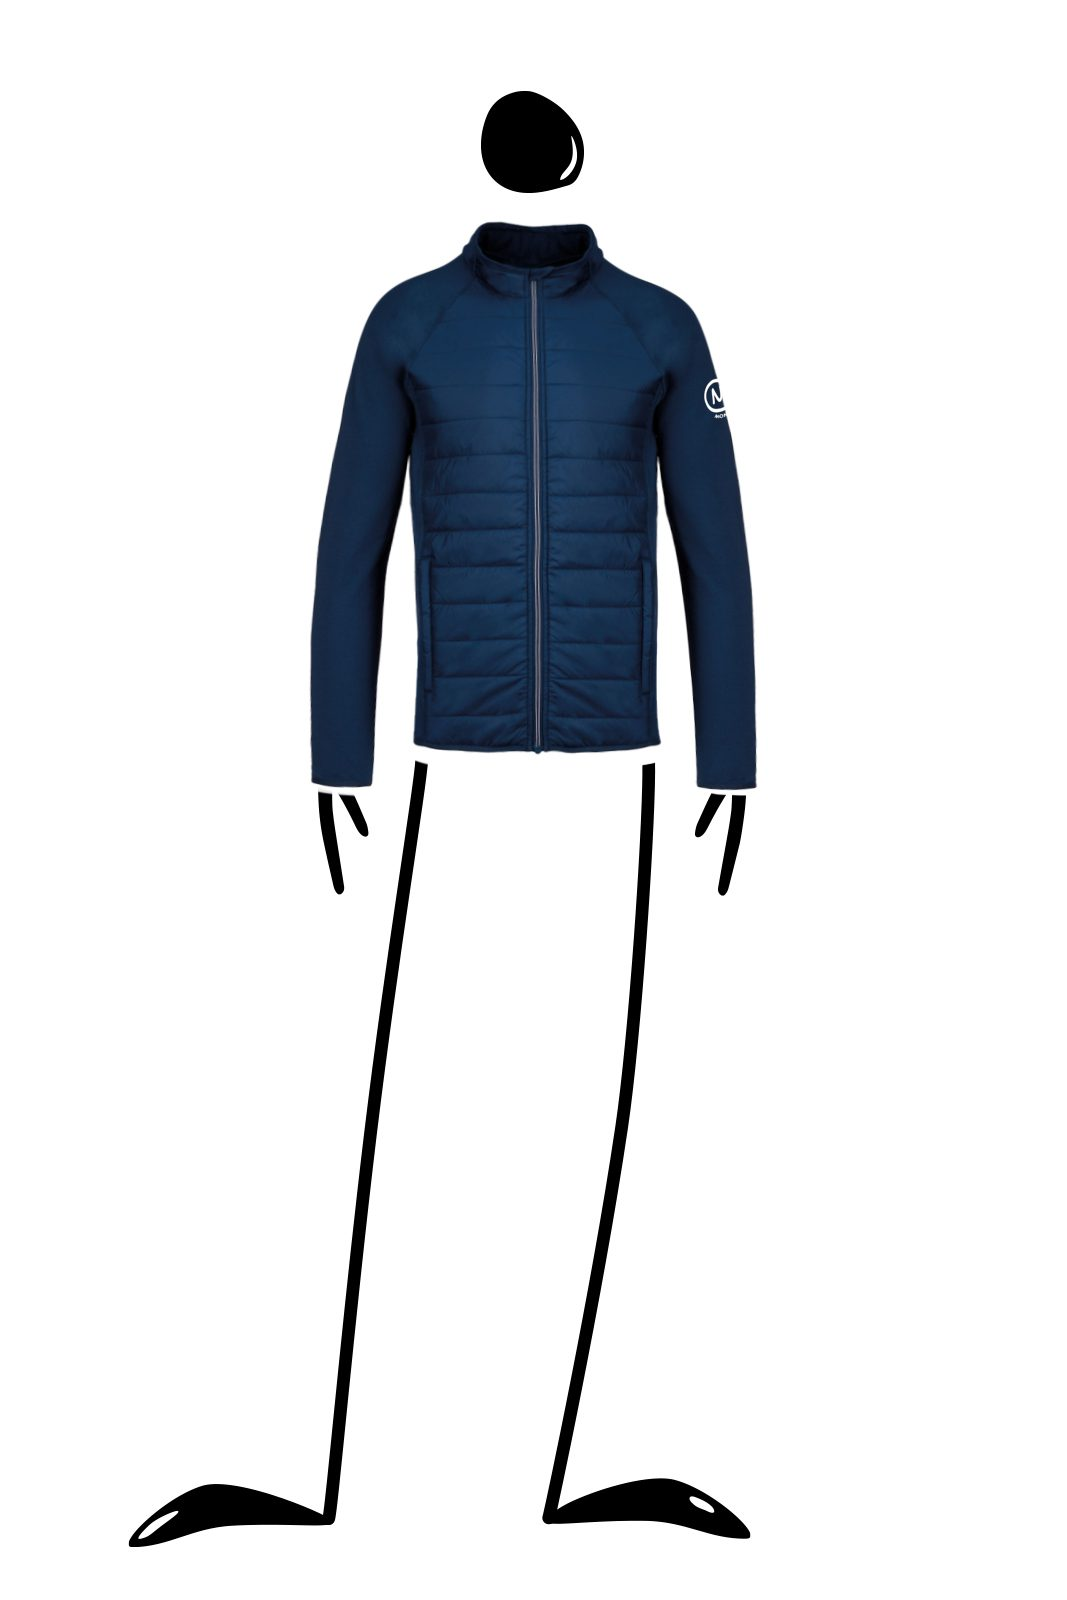 Waterproof unisex jacket blue navy for men KING Monvic